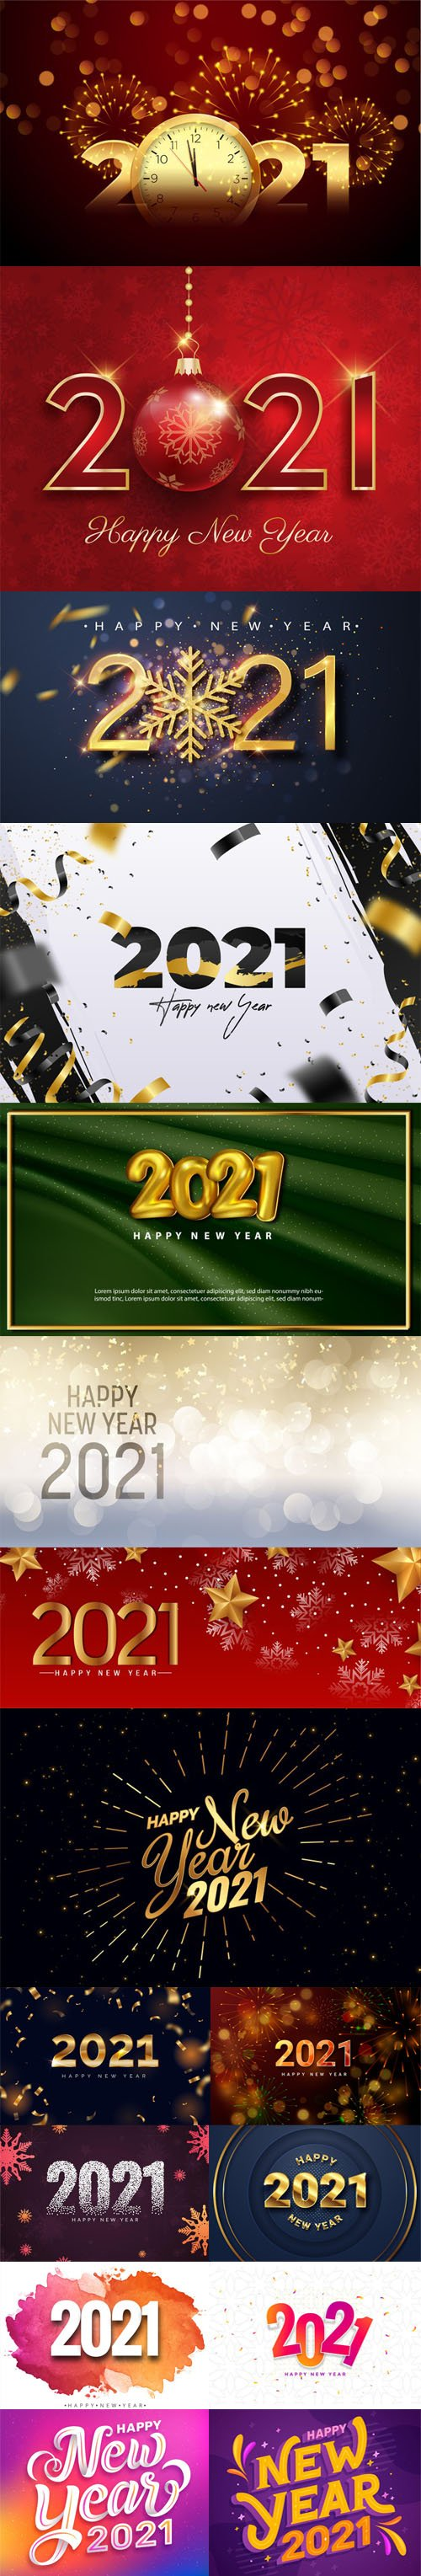 16 Happy New Year 2021 Backgrounds & Lettering Templates in Vector